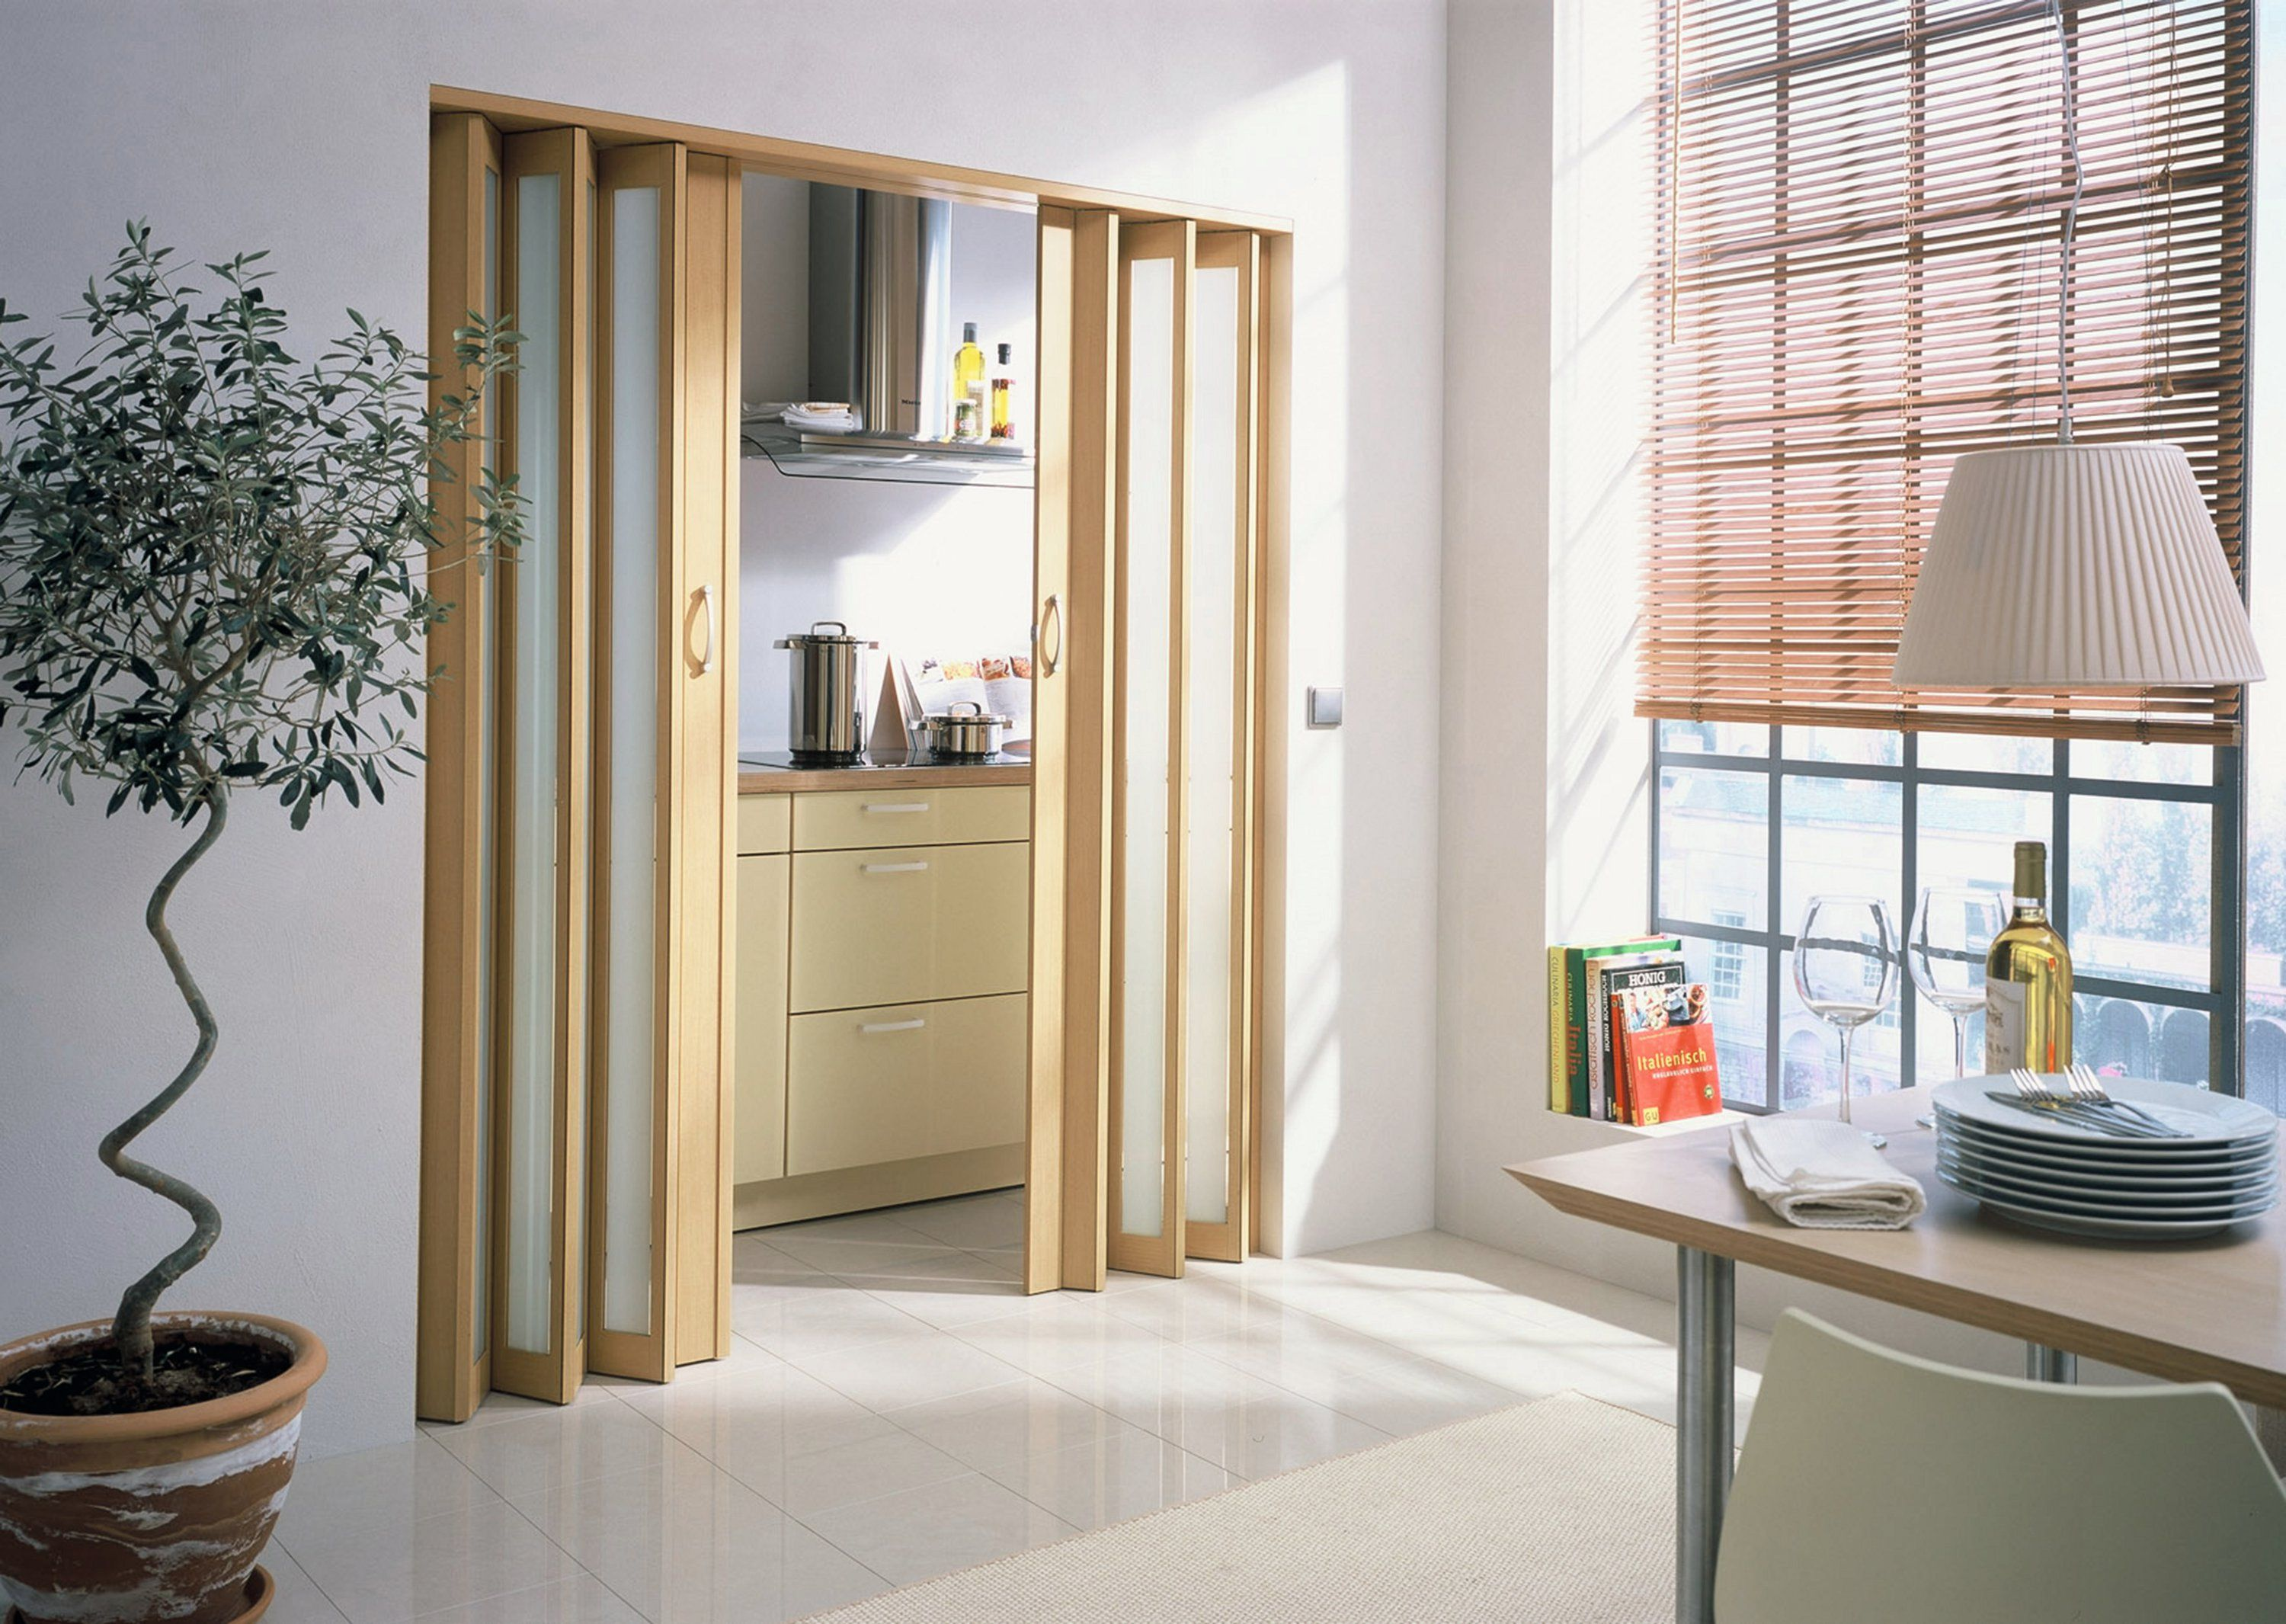 Attractive Built In Room Divider Design. Amazing Nice Adorable Wonderful  Cool Oom Separator Idea With Simple Design Idea And Has Nice Small Room  Concept.